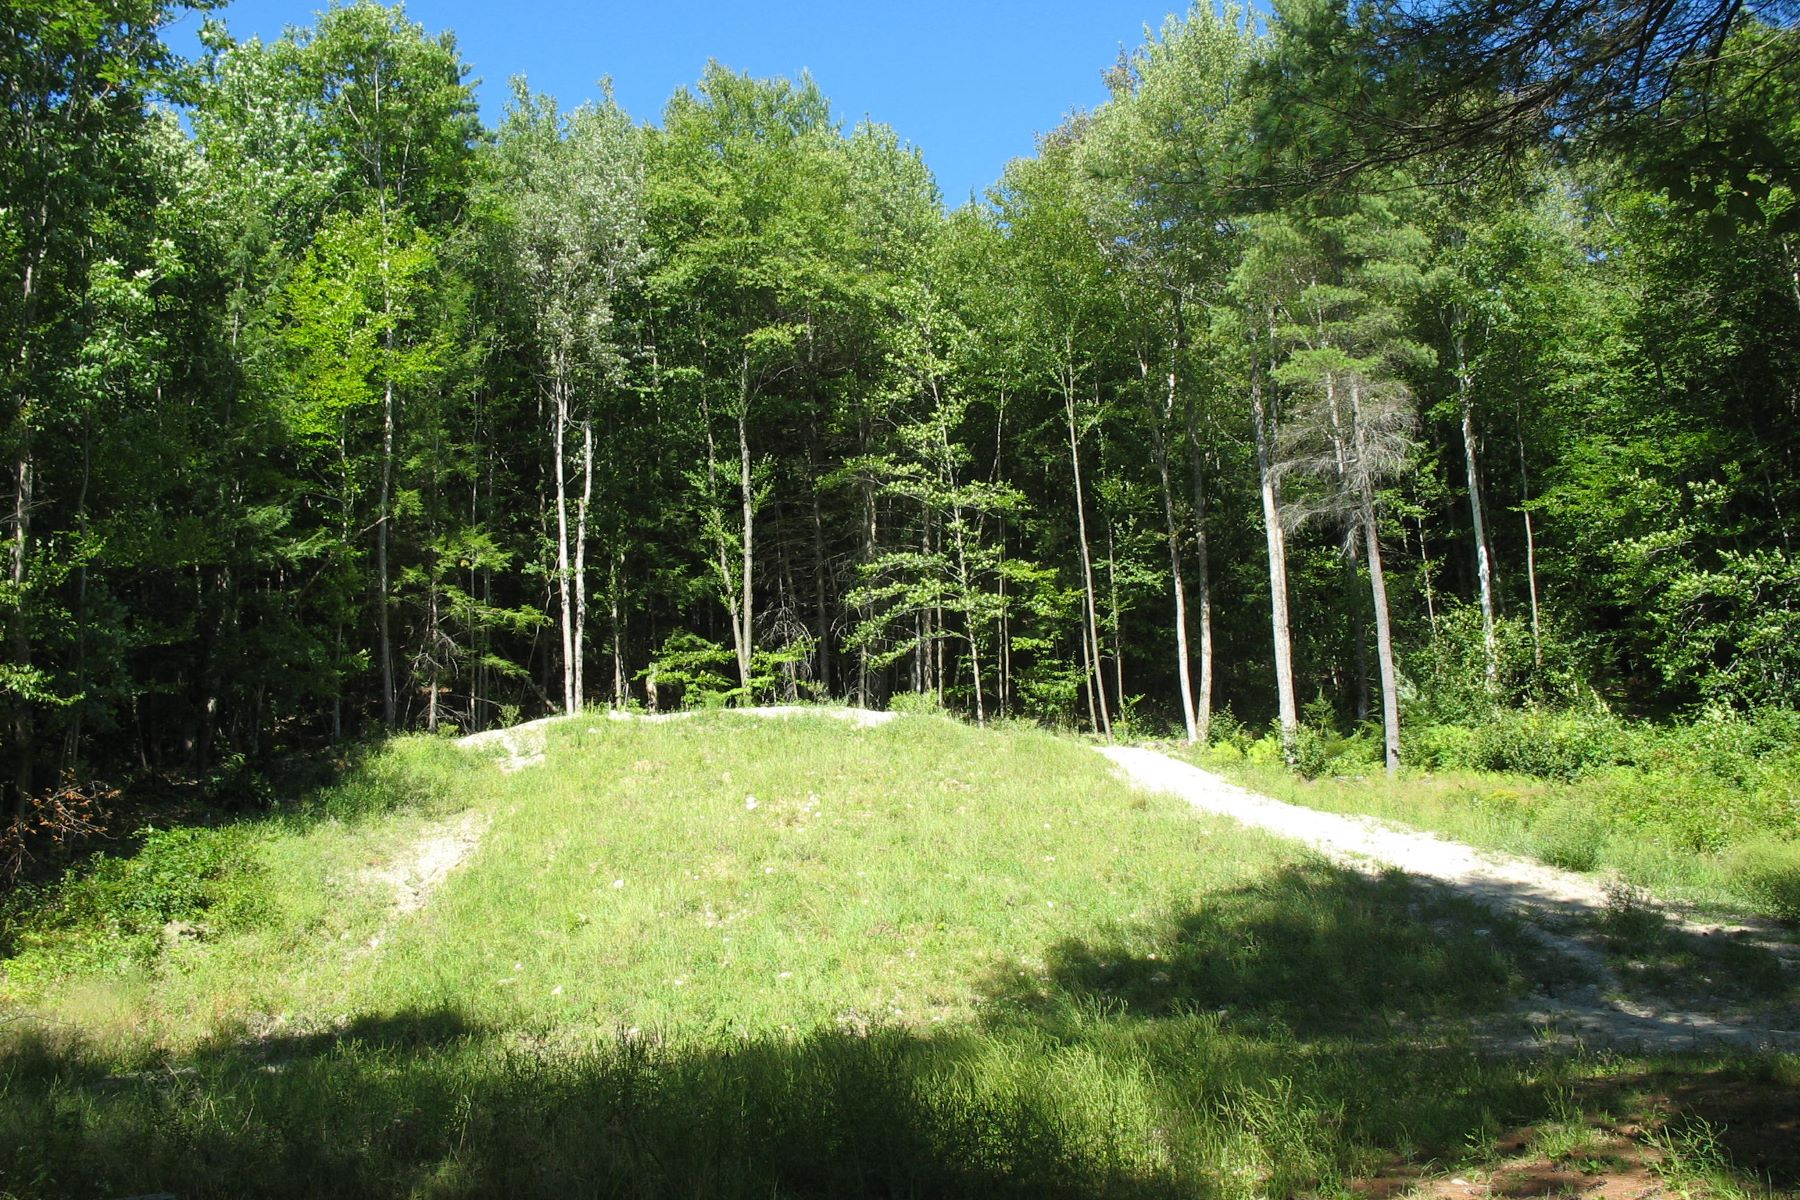 Land for Sale at Lot in Lebanon in convenient location 175 Sunset Rock Rd Lebanon, New Hampshire, 03766 United States